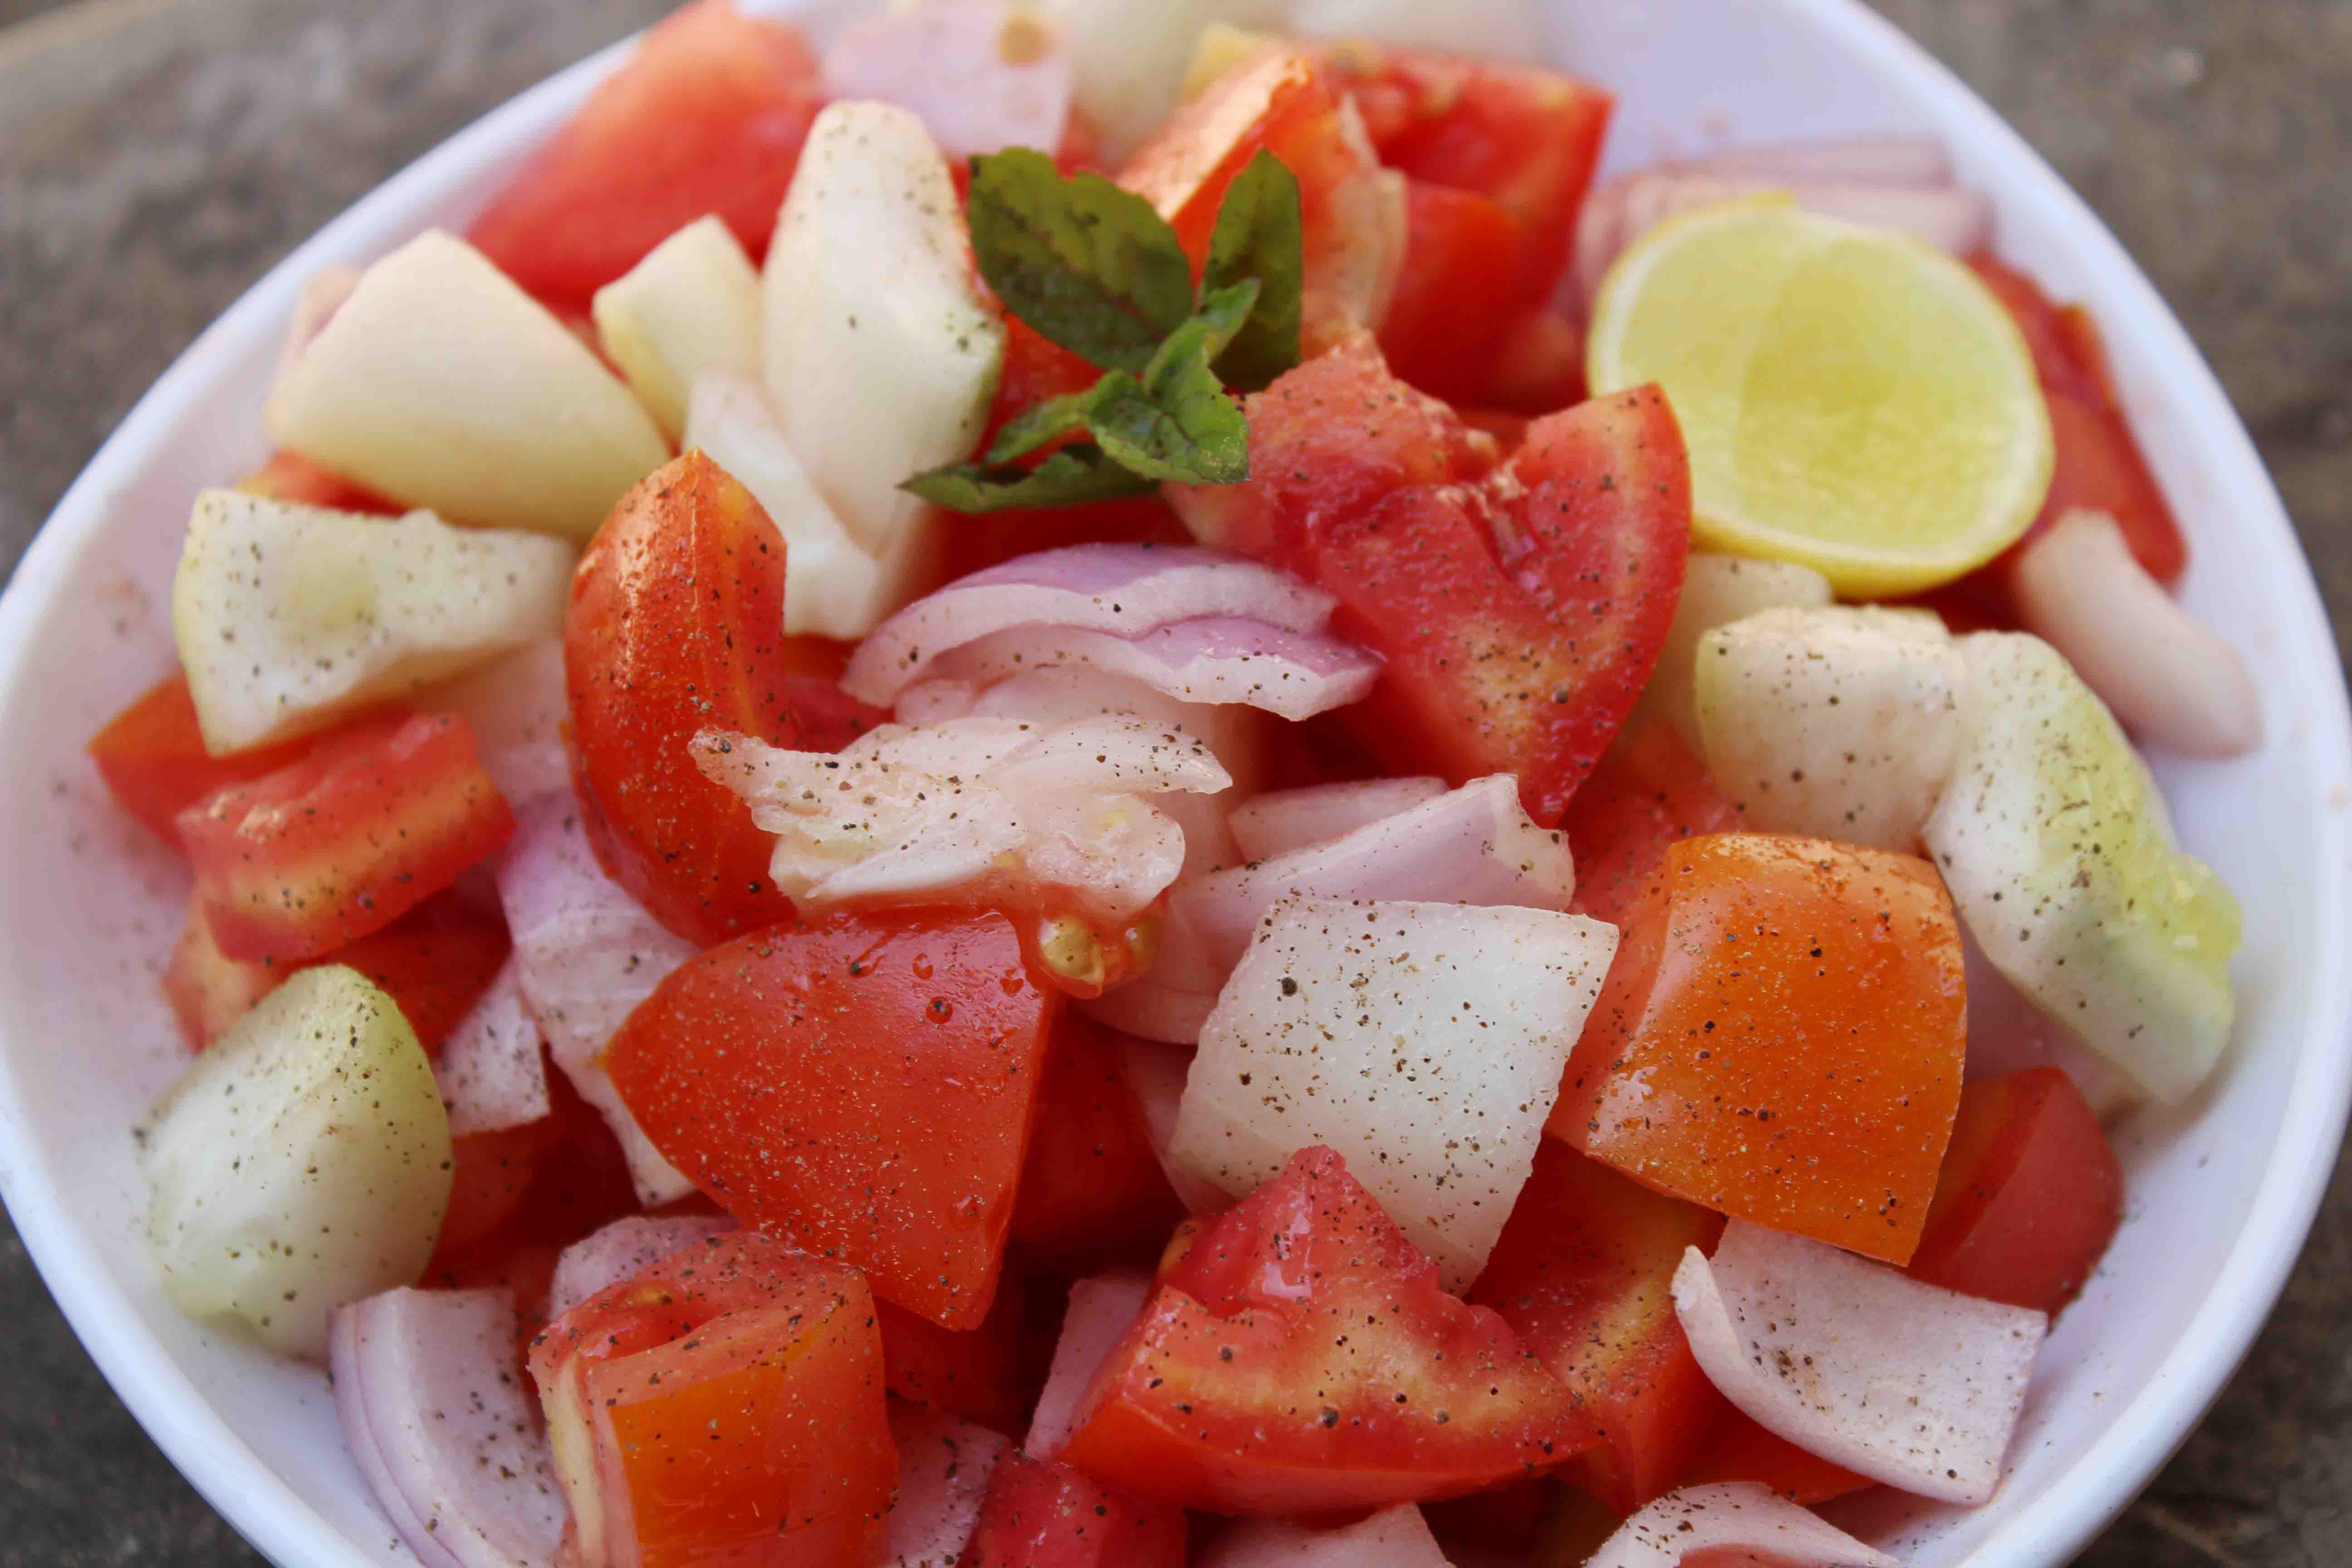 onion, tomato and cucumber salad